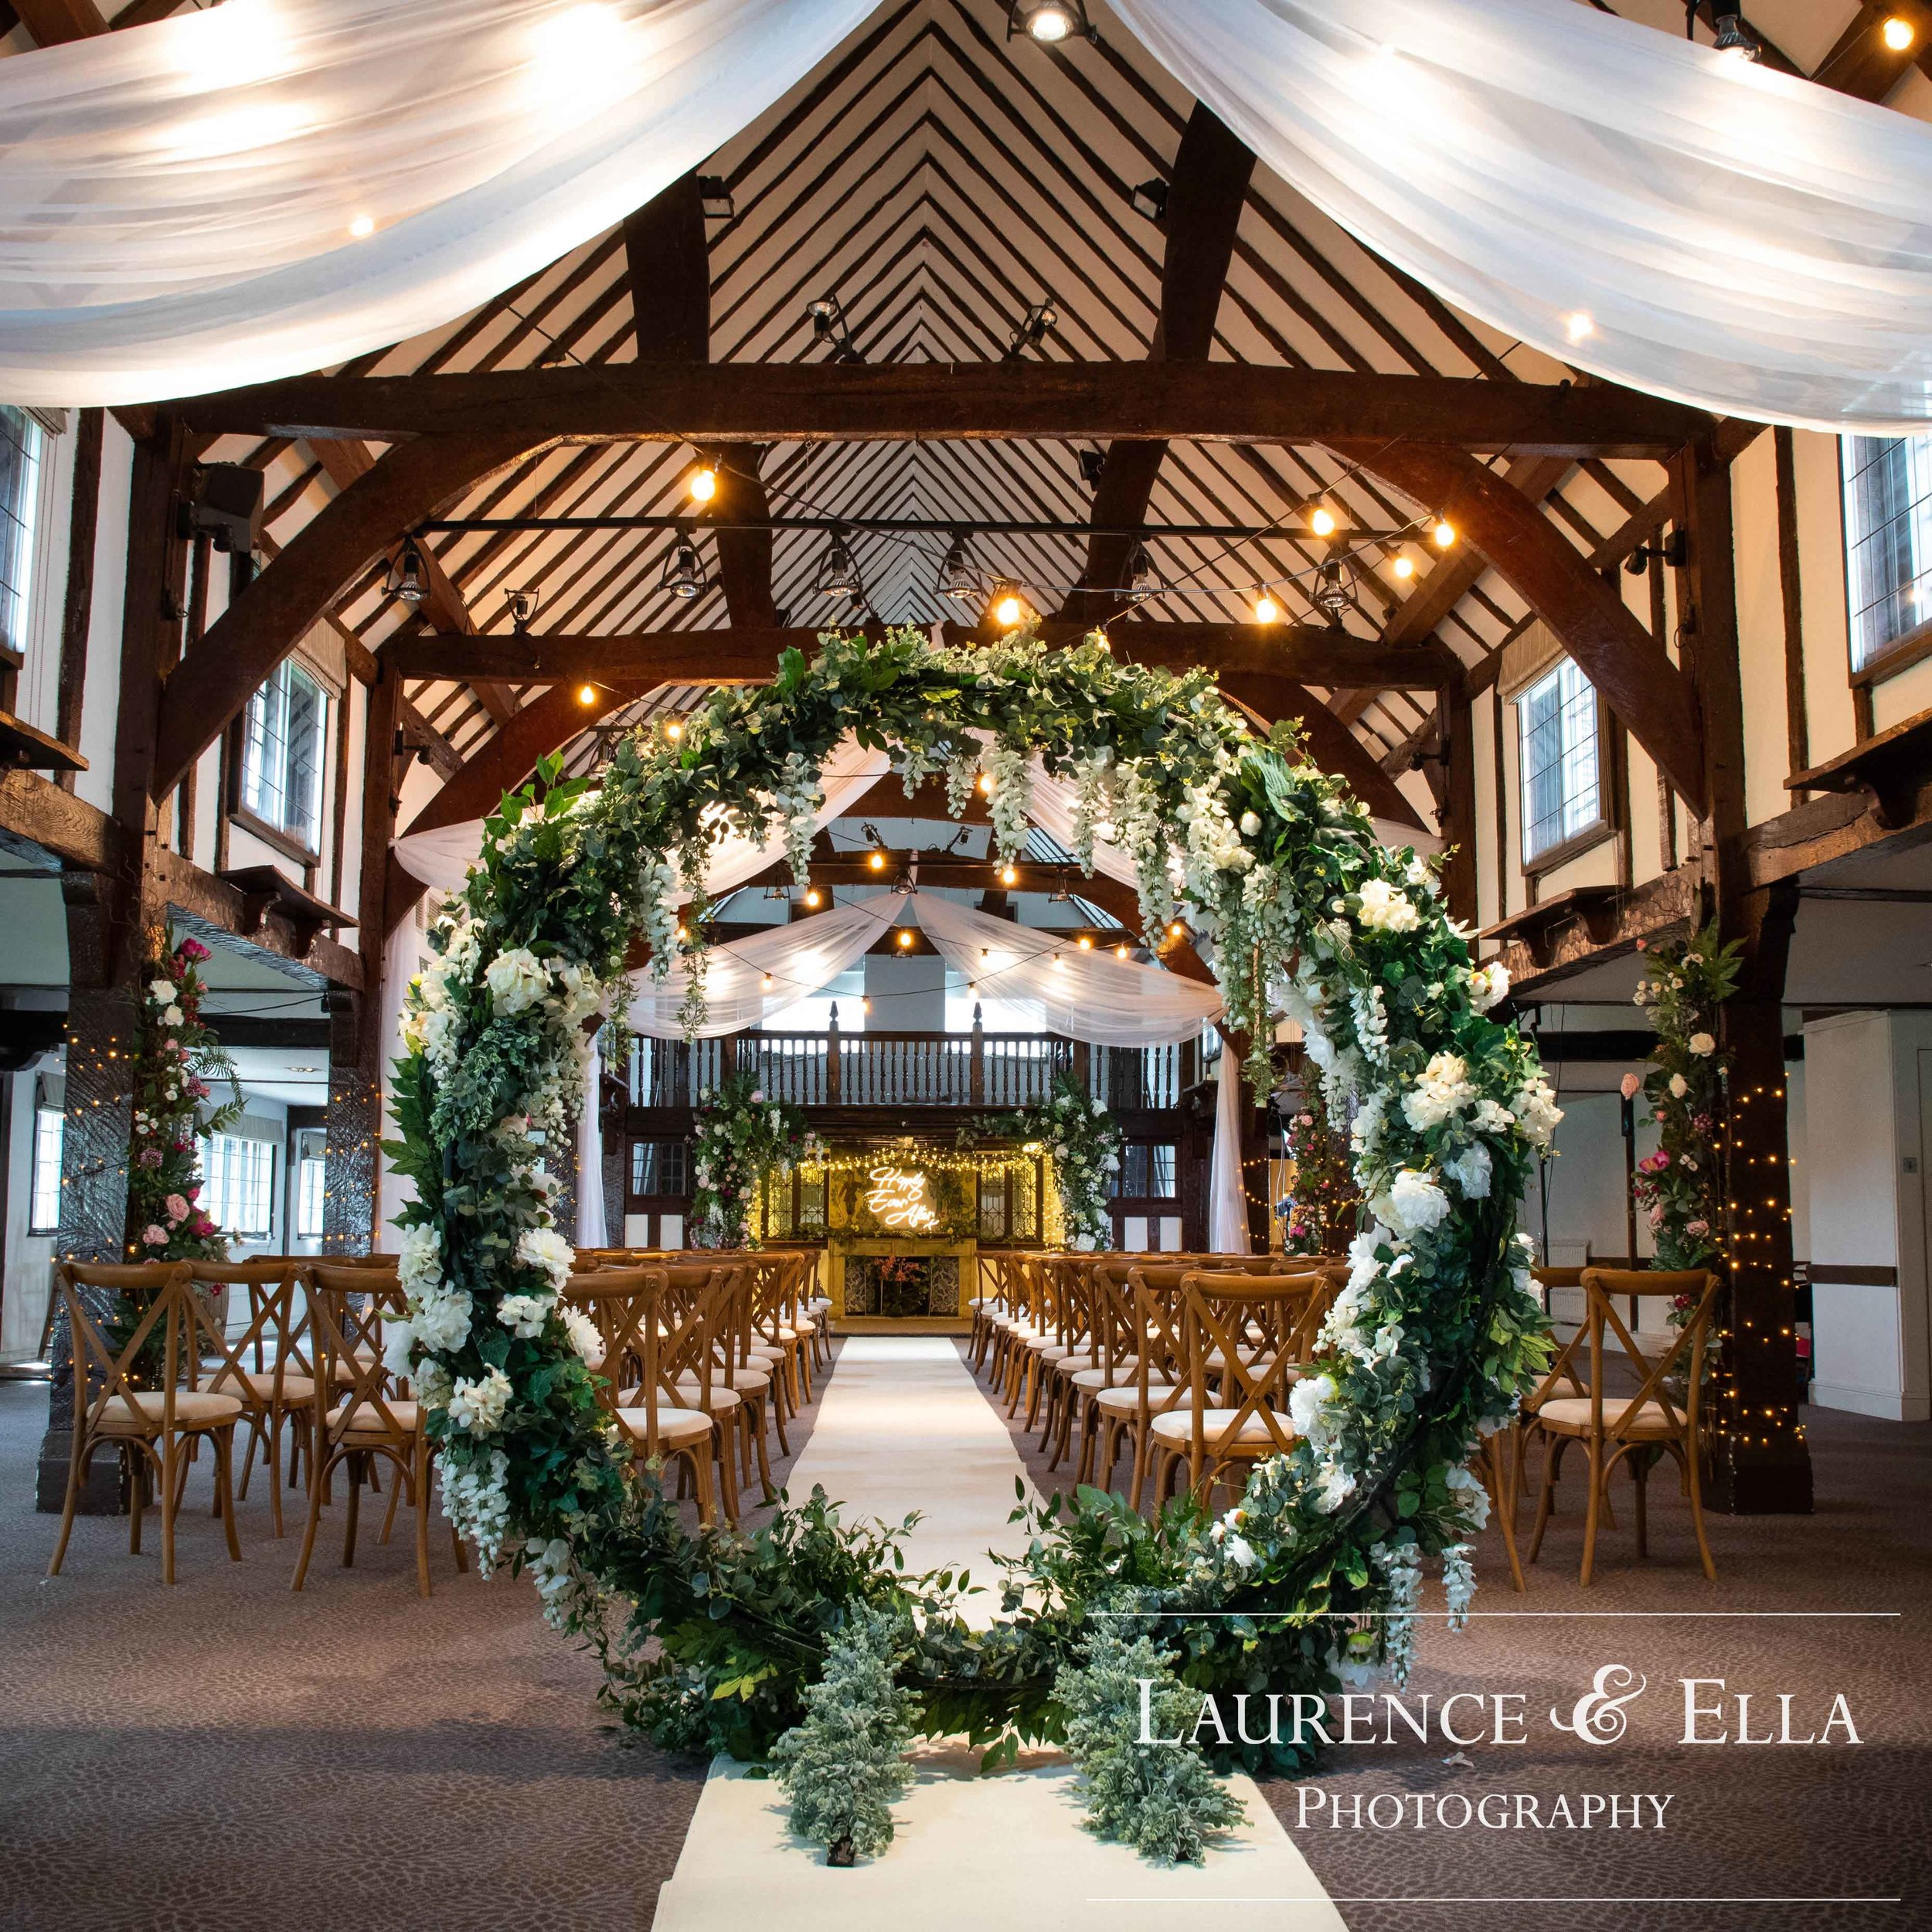 Image by Laurence & Ella Photography